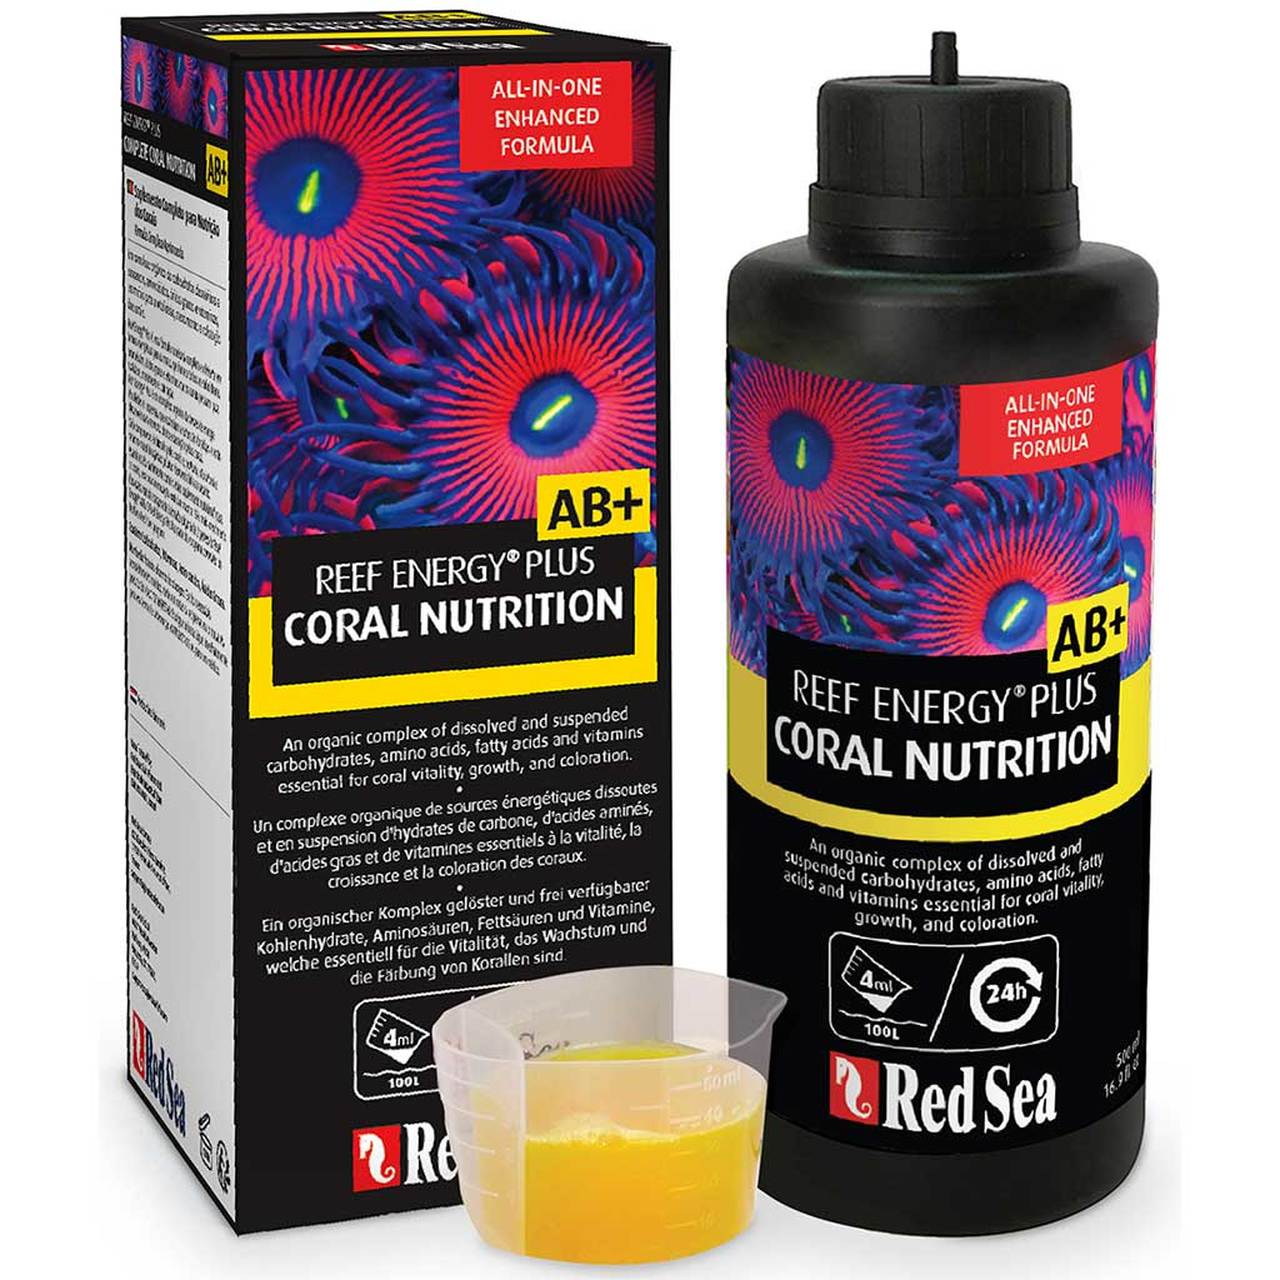 Red Sea Reef Energy AB+ Plus Coral Nutrition, 500 ml by Red Sea]